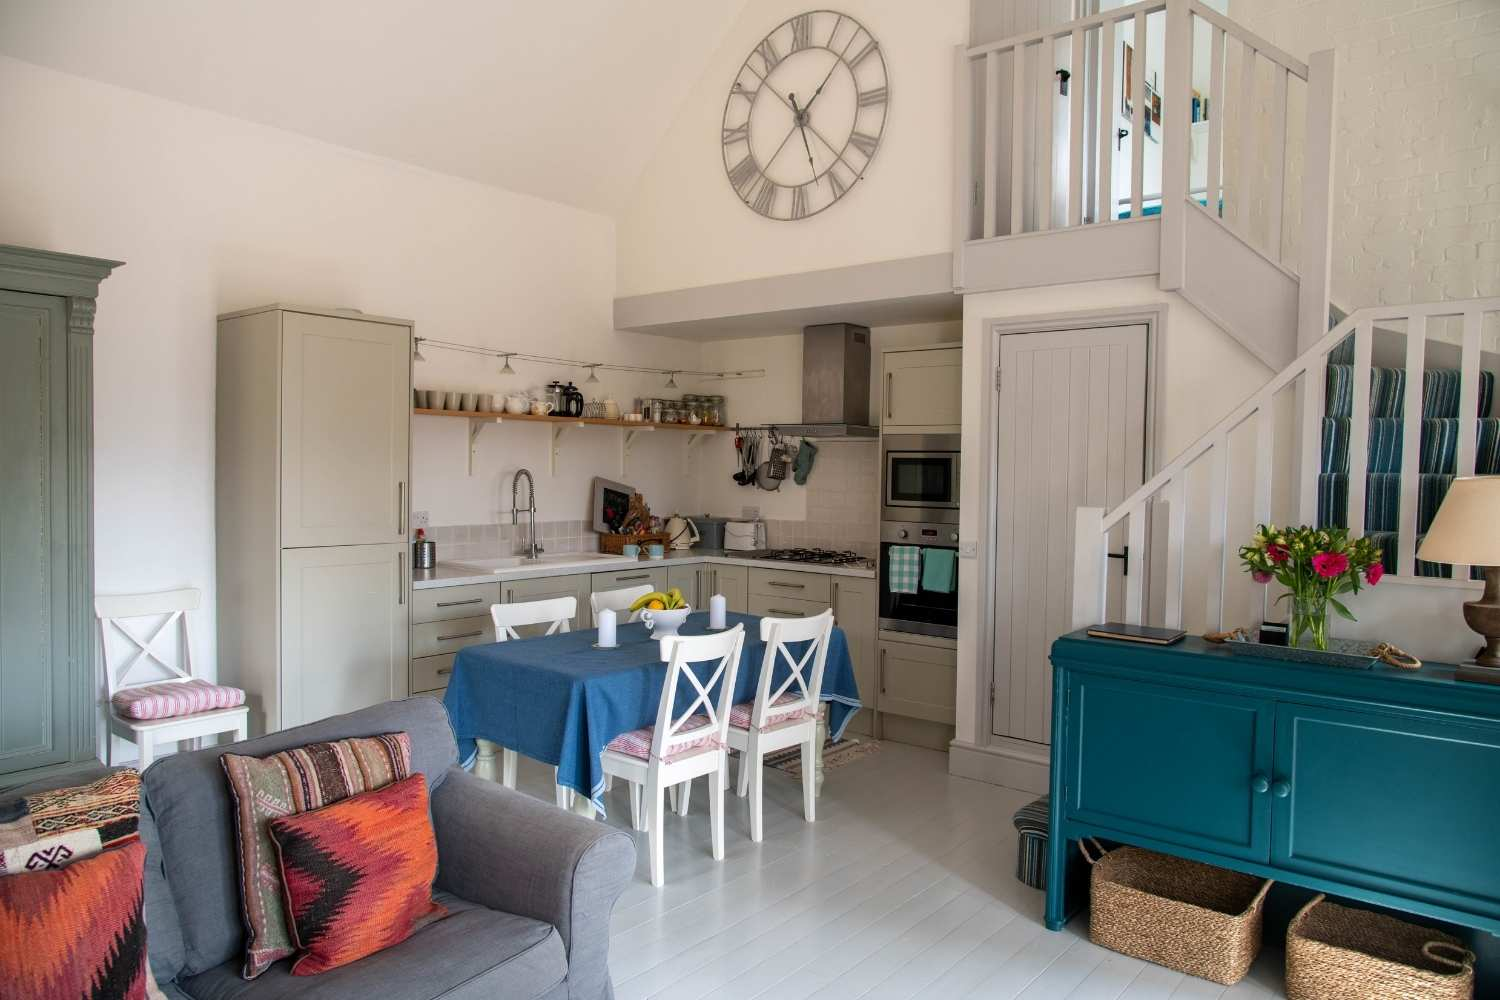 Open plan kitchen, dining & sitting room with vaulted ceilings